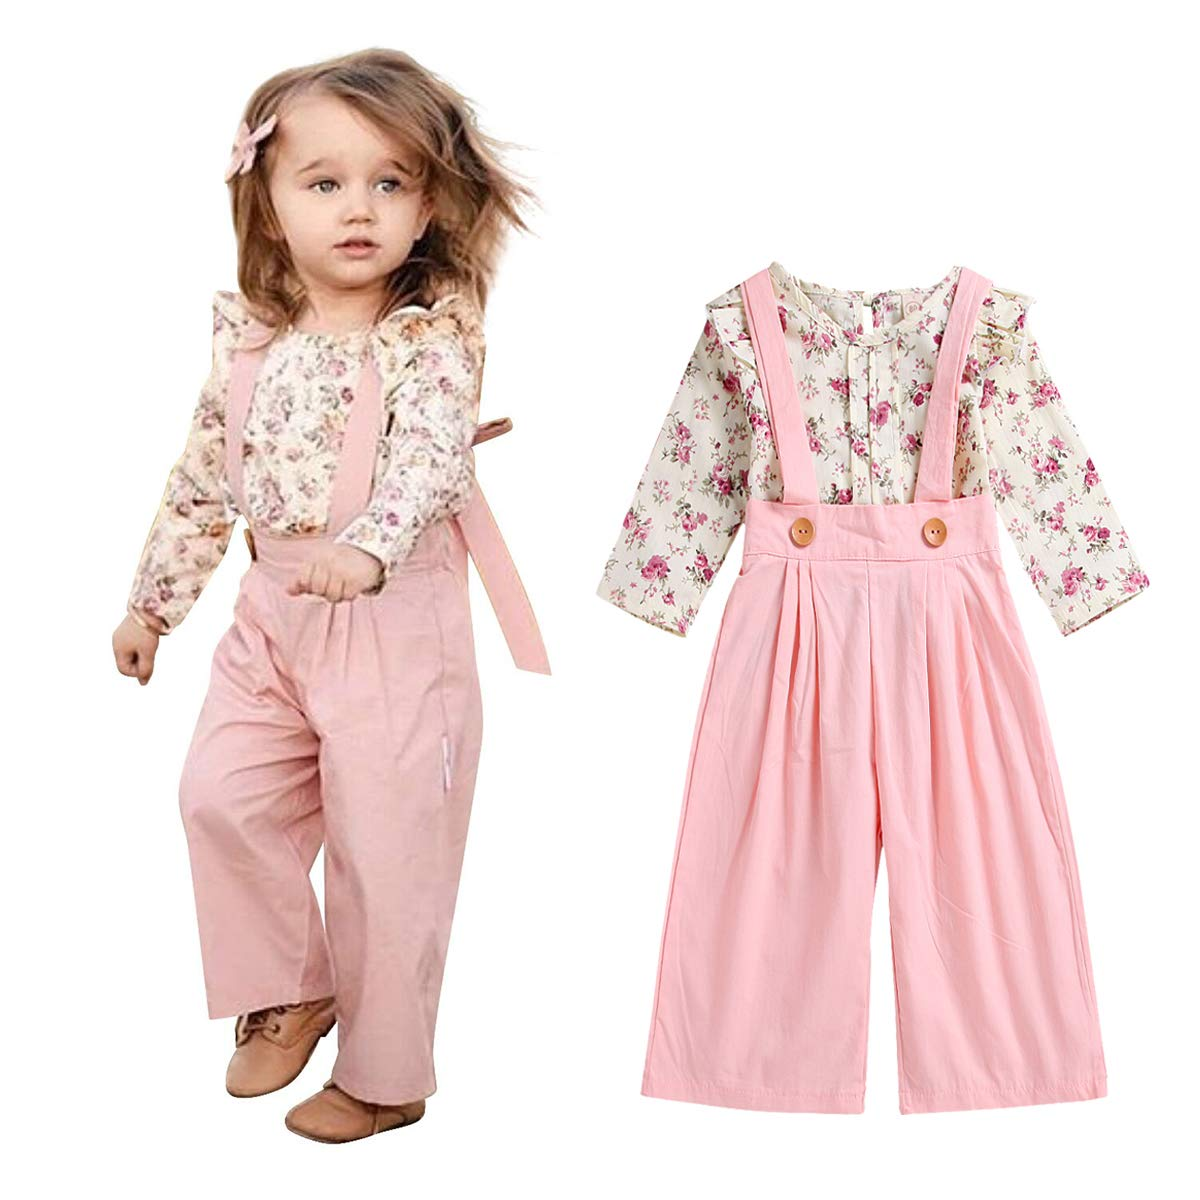 Unistylo 2PCS Girl Toddler Clothes Floral Suspenders Pant Set, Baby Girls Clothes Long Sleeve Shirt+Sleeve Overalls